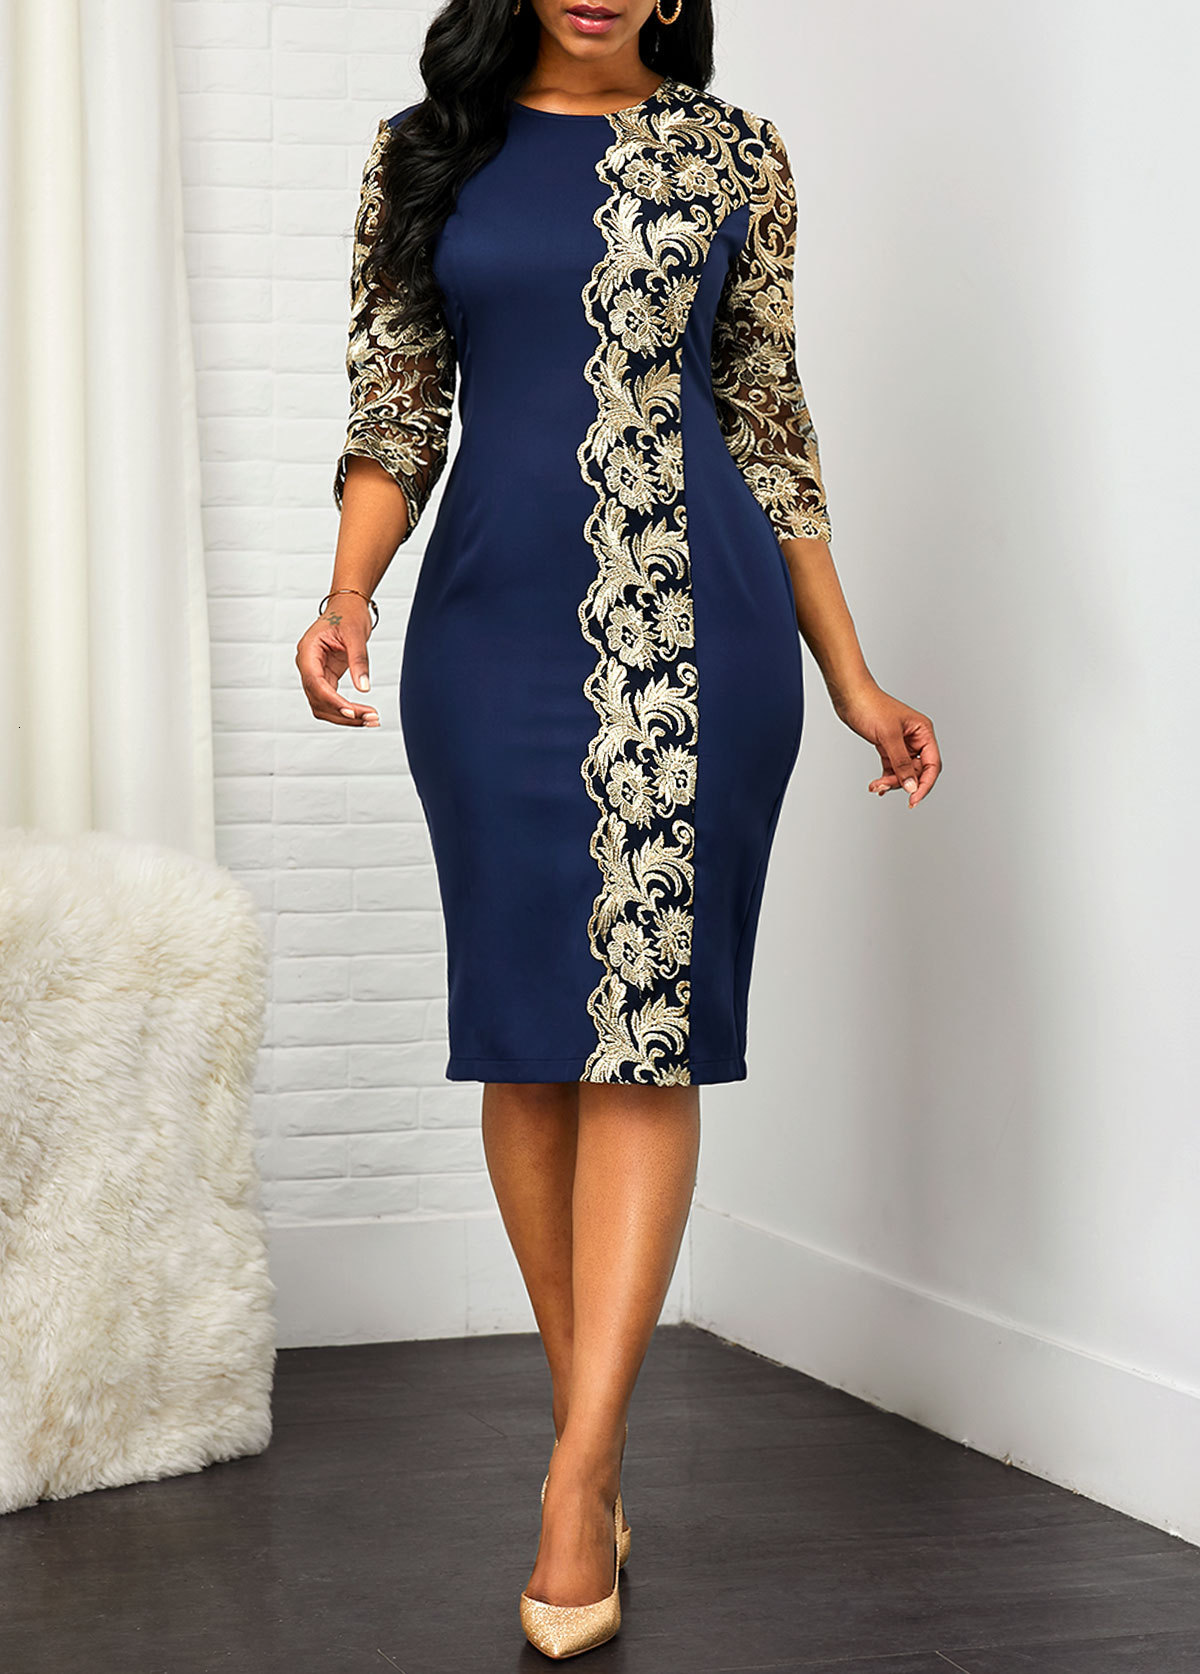 BacklakeGirls 2020 Round Neck Long Sleeve Elegant Lace Pattern Women Cocktail Dress Plus Size Mother Dress Vestido Coctel Corto